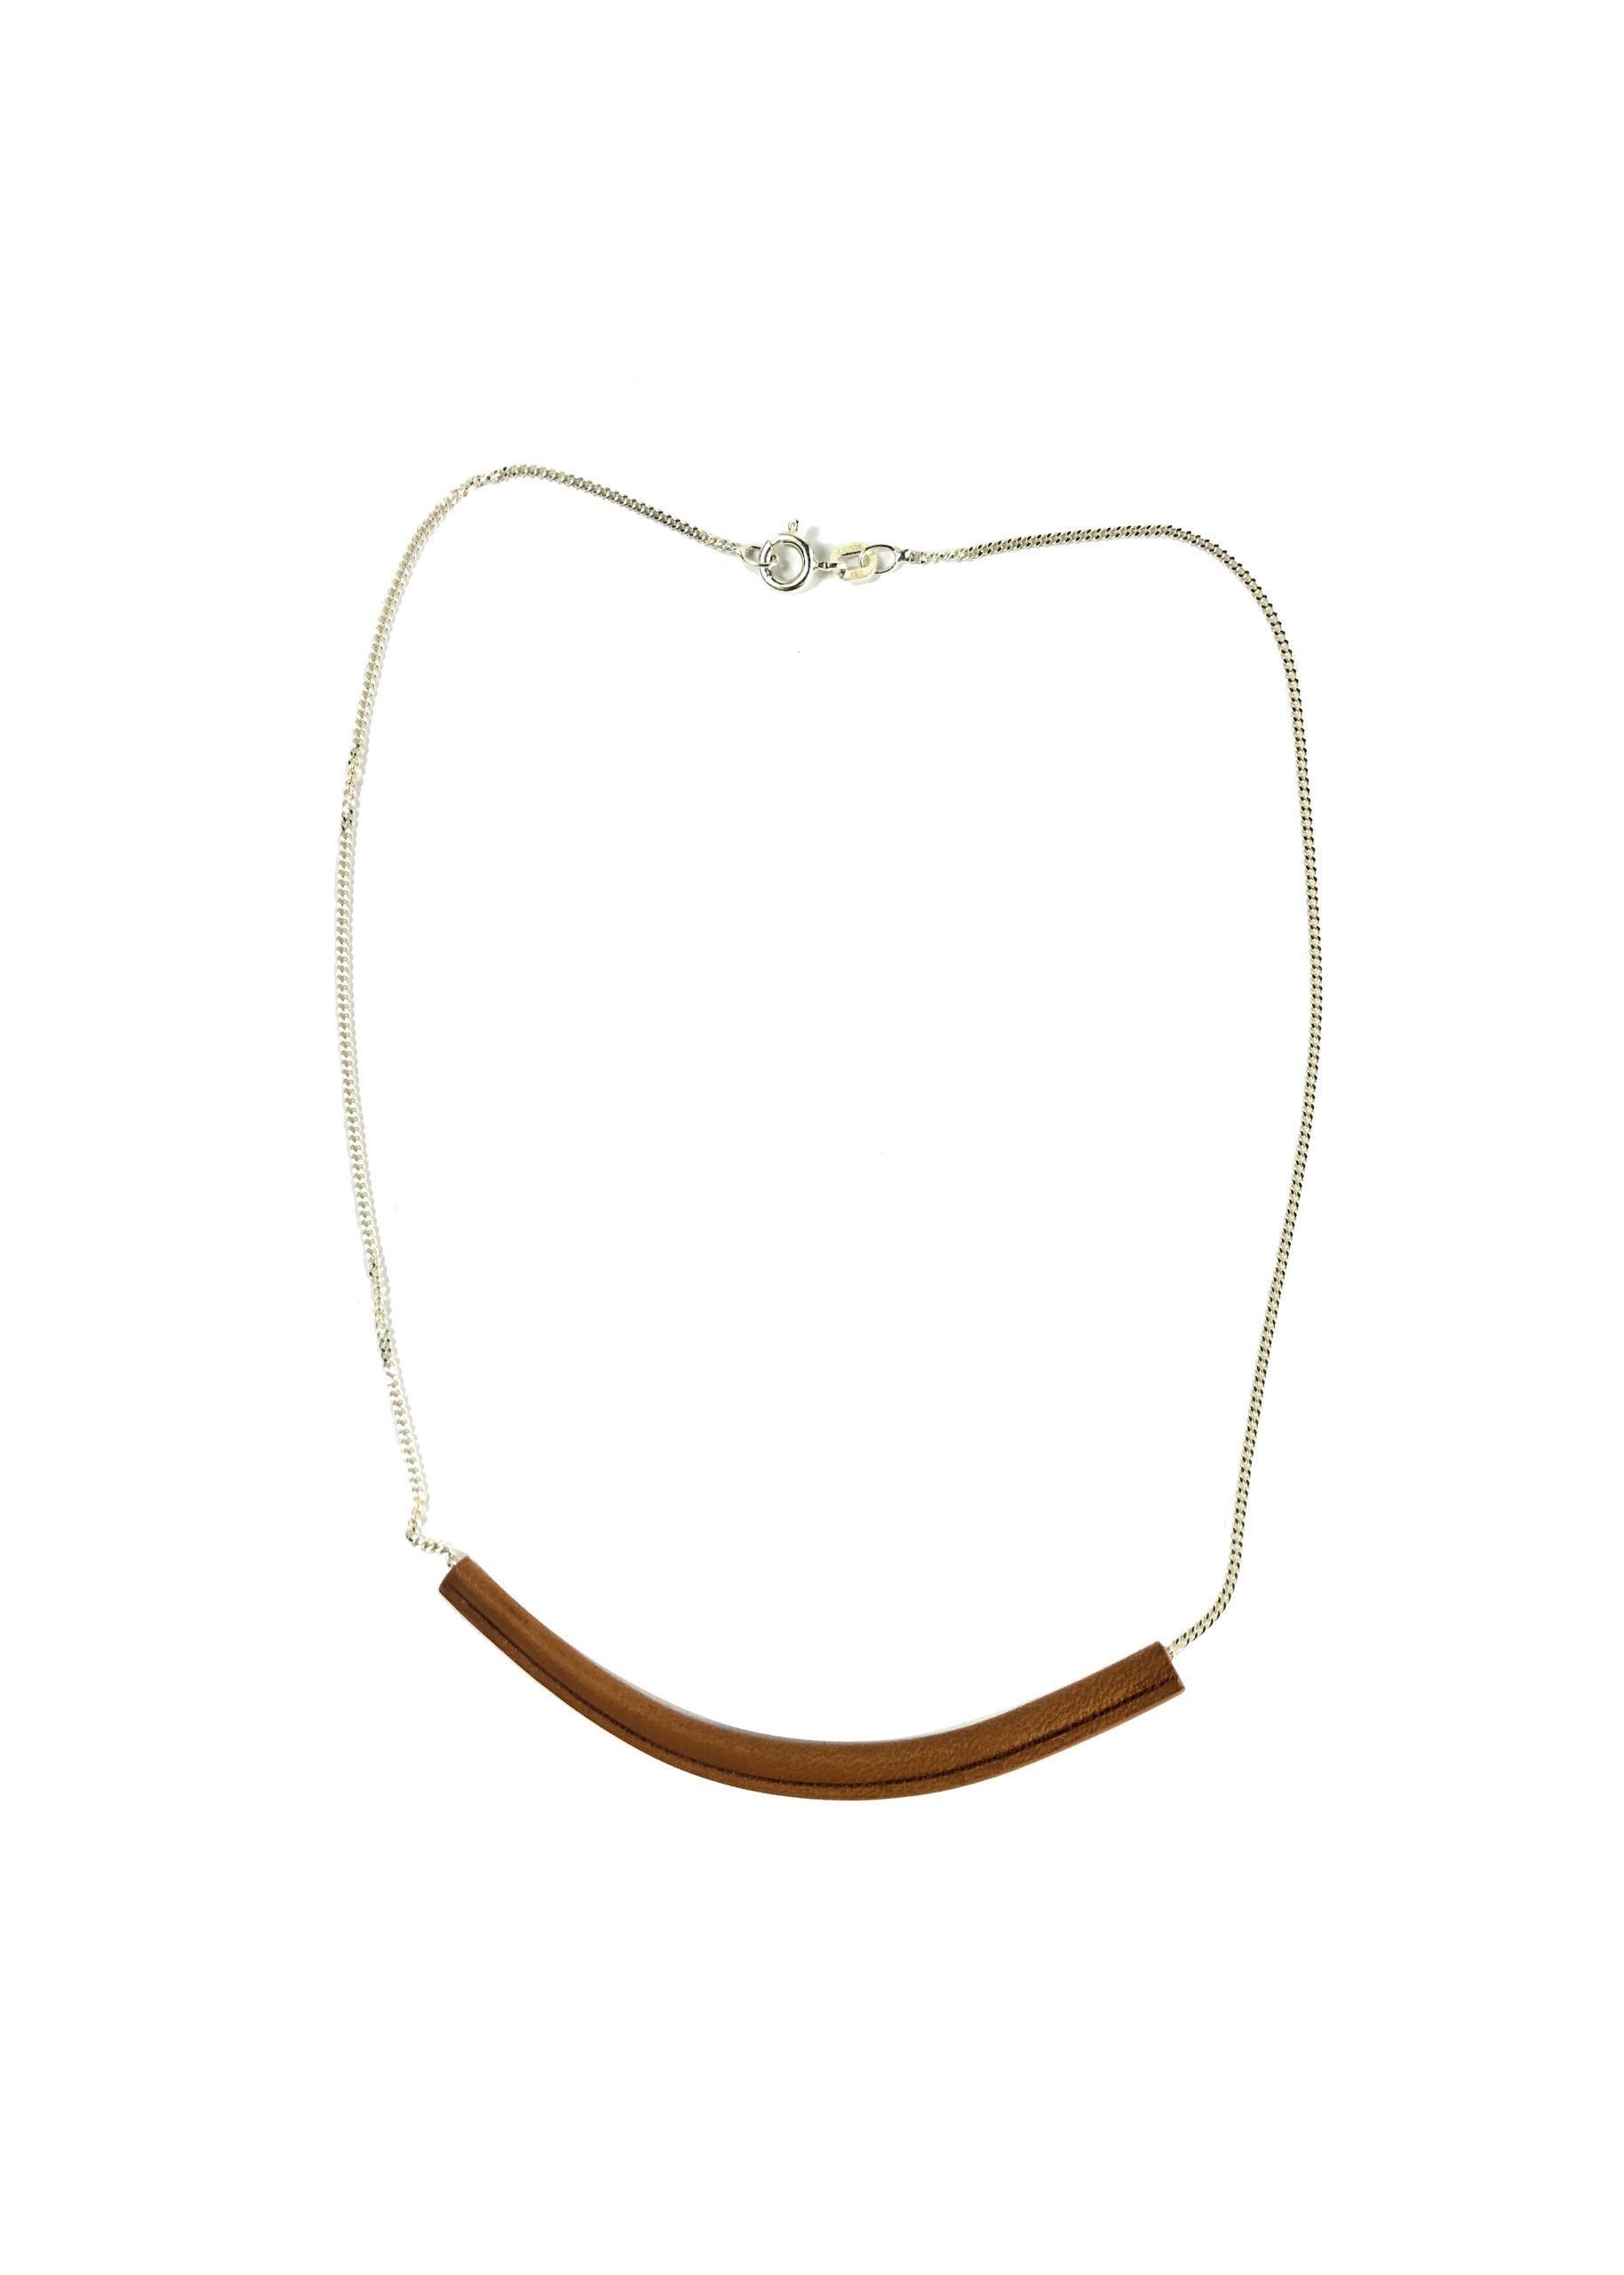 Short snake necklace made of claf leather and silver chain.